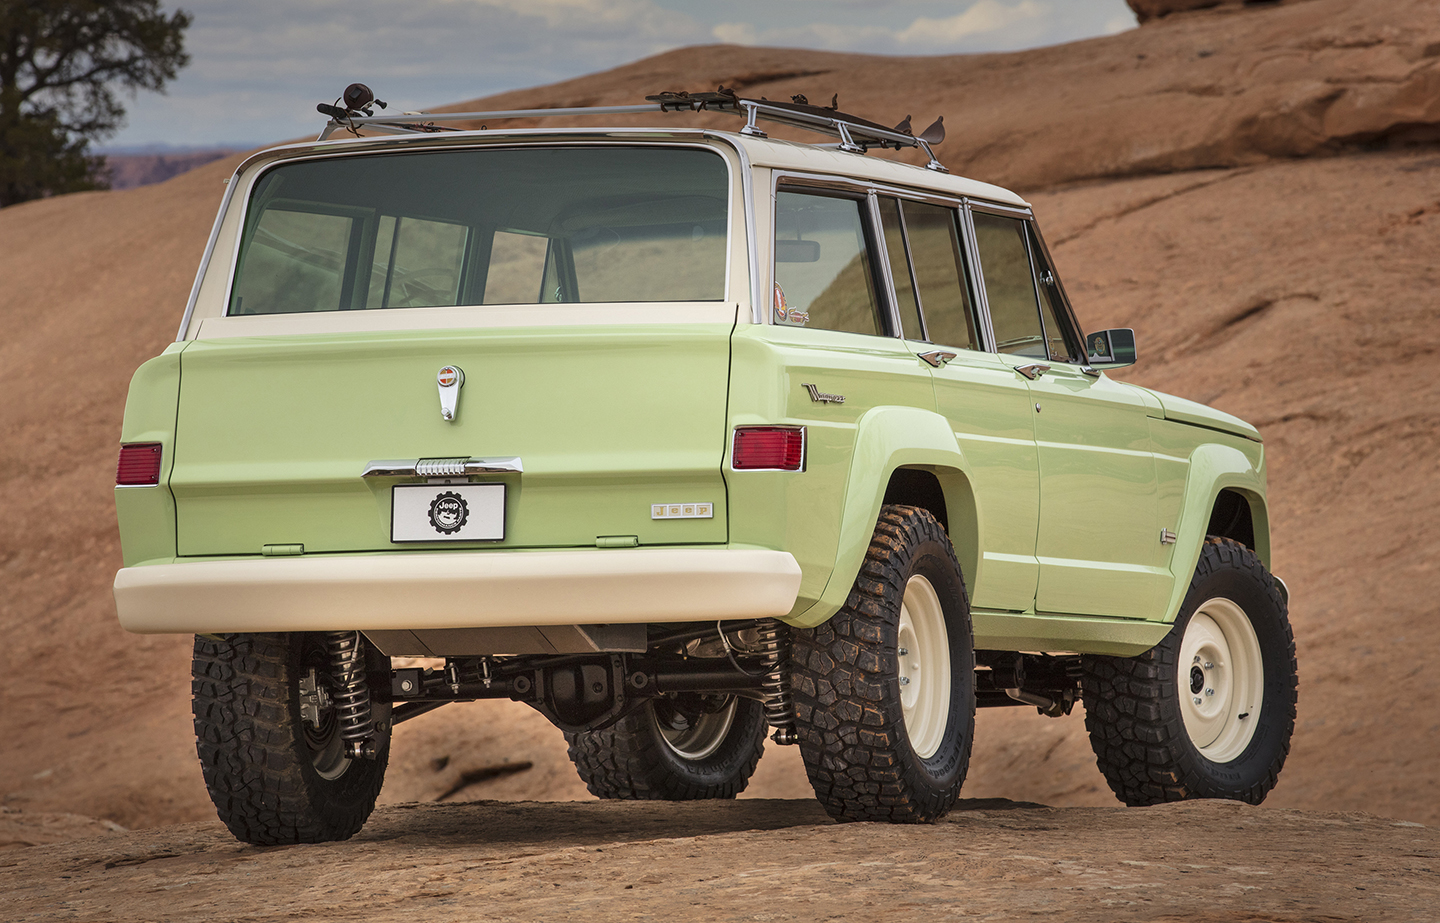 START LETTER-WRITING TO JEEP — THIS MIGHT JUST SELL! — 1965 Jeep Wagoneer Roadtrip concept